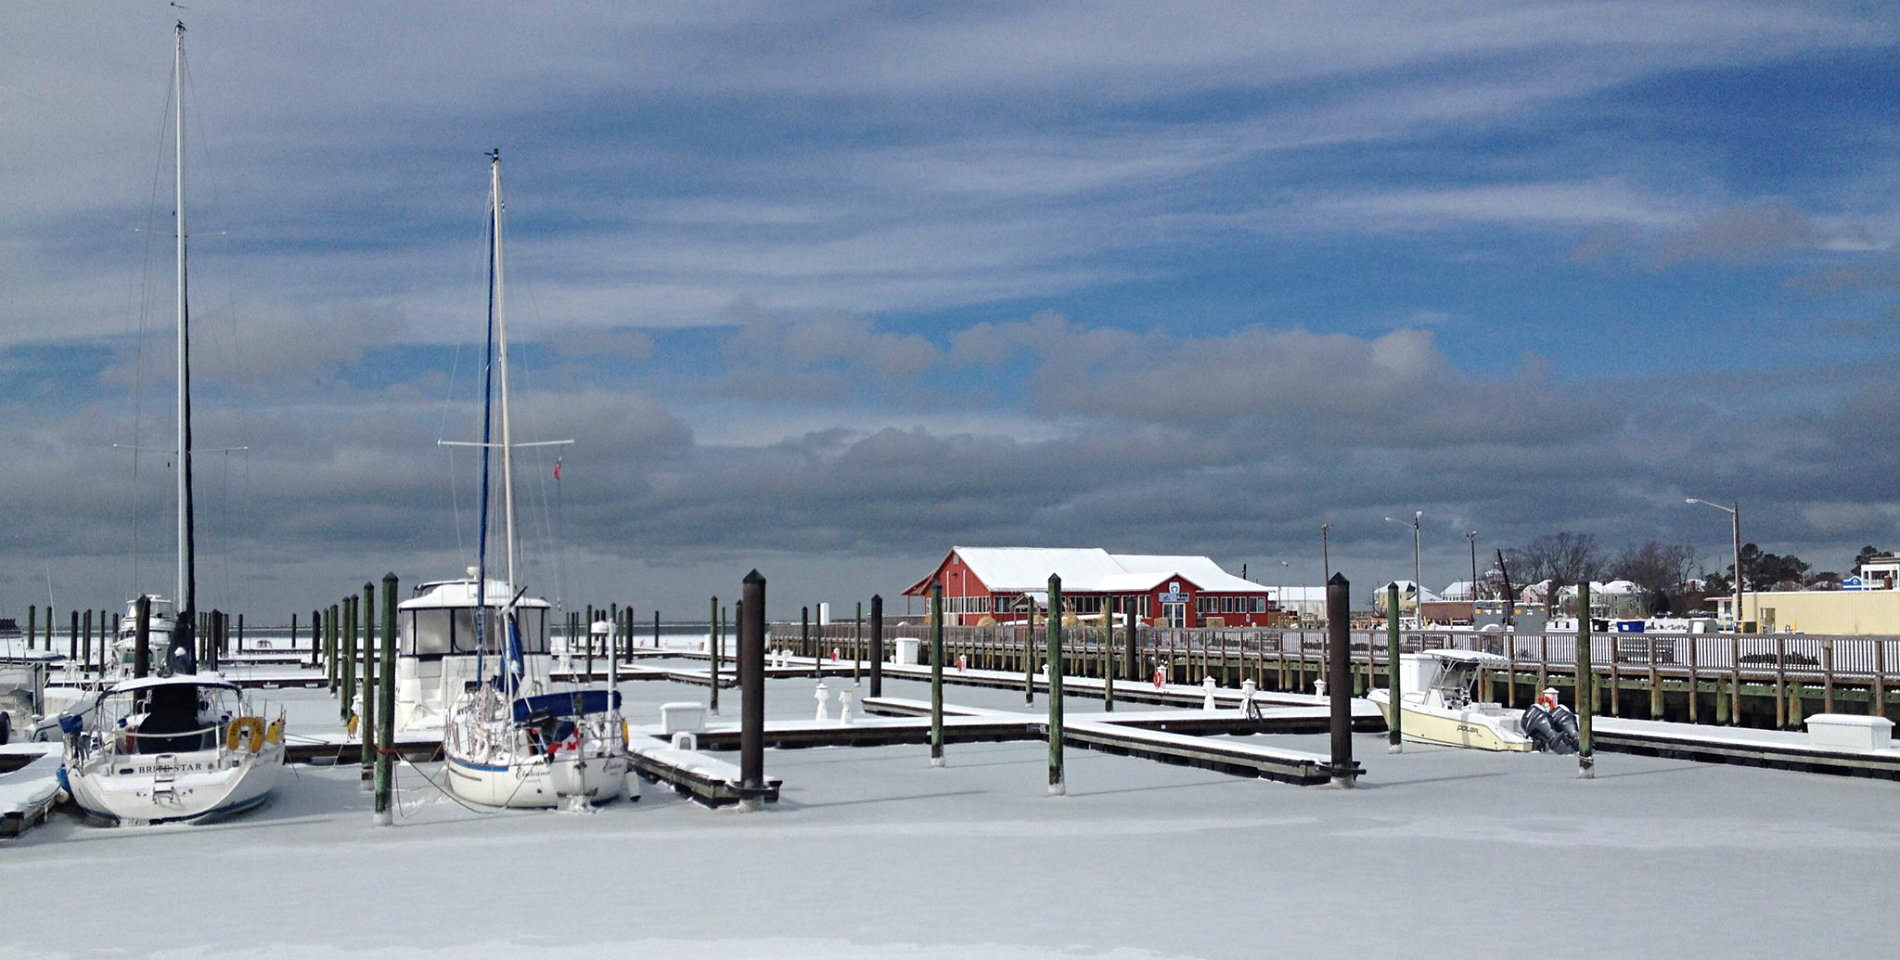 Sailboats rest at the wooden docks, a fine layer of white snow lays on the iced over Bay.